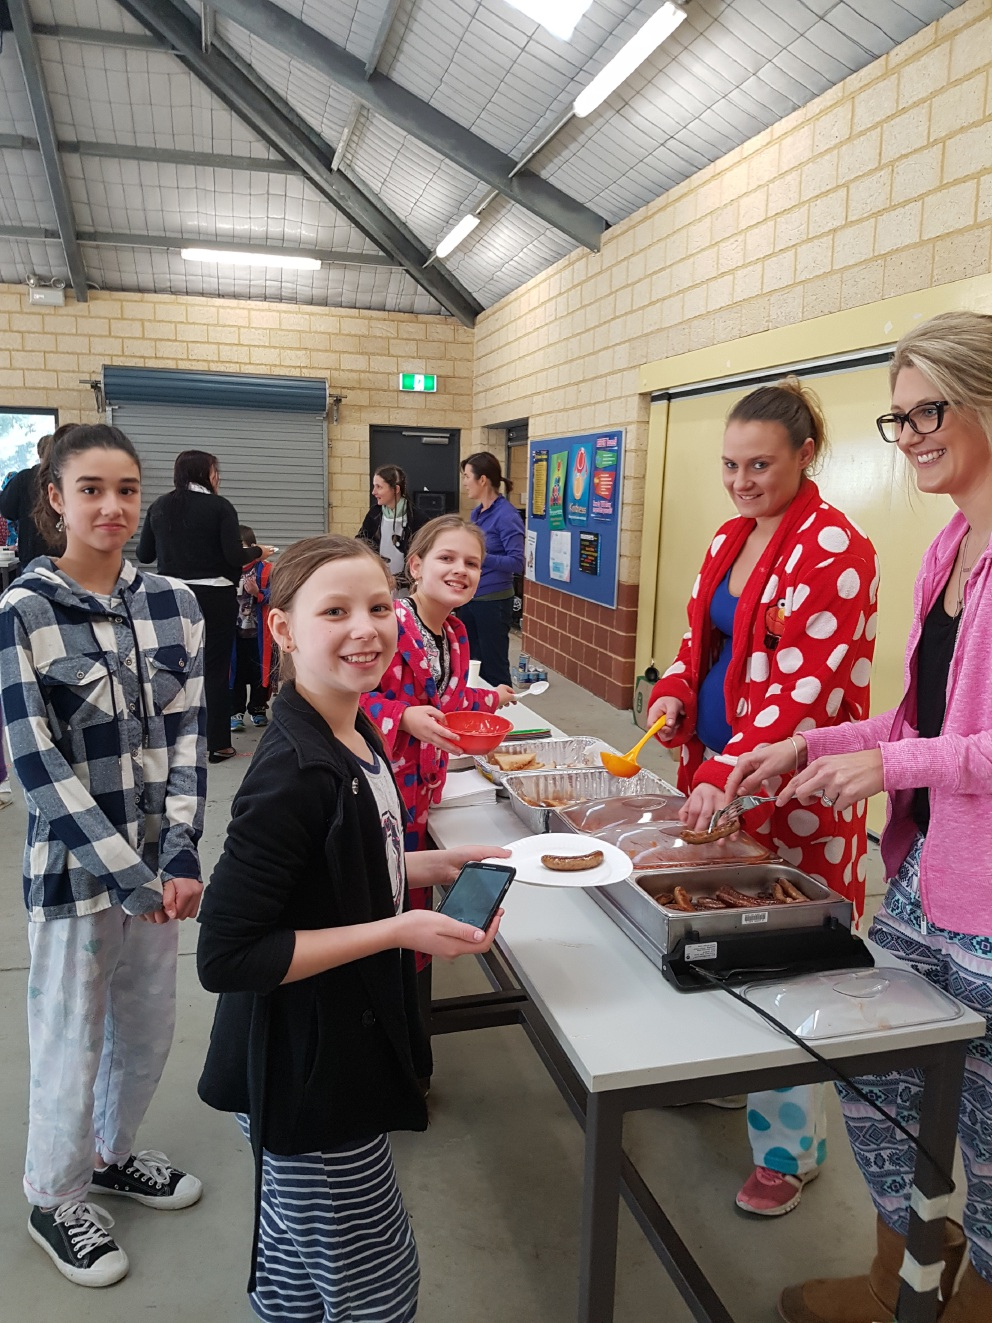 Students Jaslyn Taylor Dunne, Clarissa Stanley and Taloola Blencowe with parent Gemma Wyatt Thompson and teacher Annette Percey at the community breakfast.